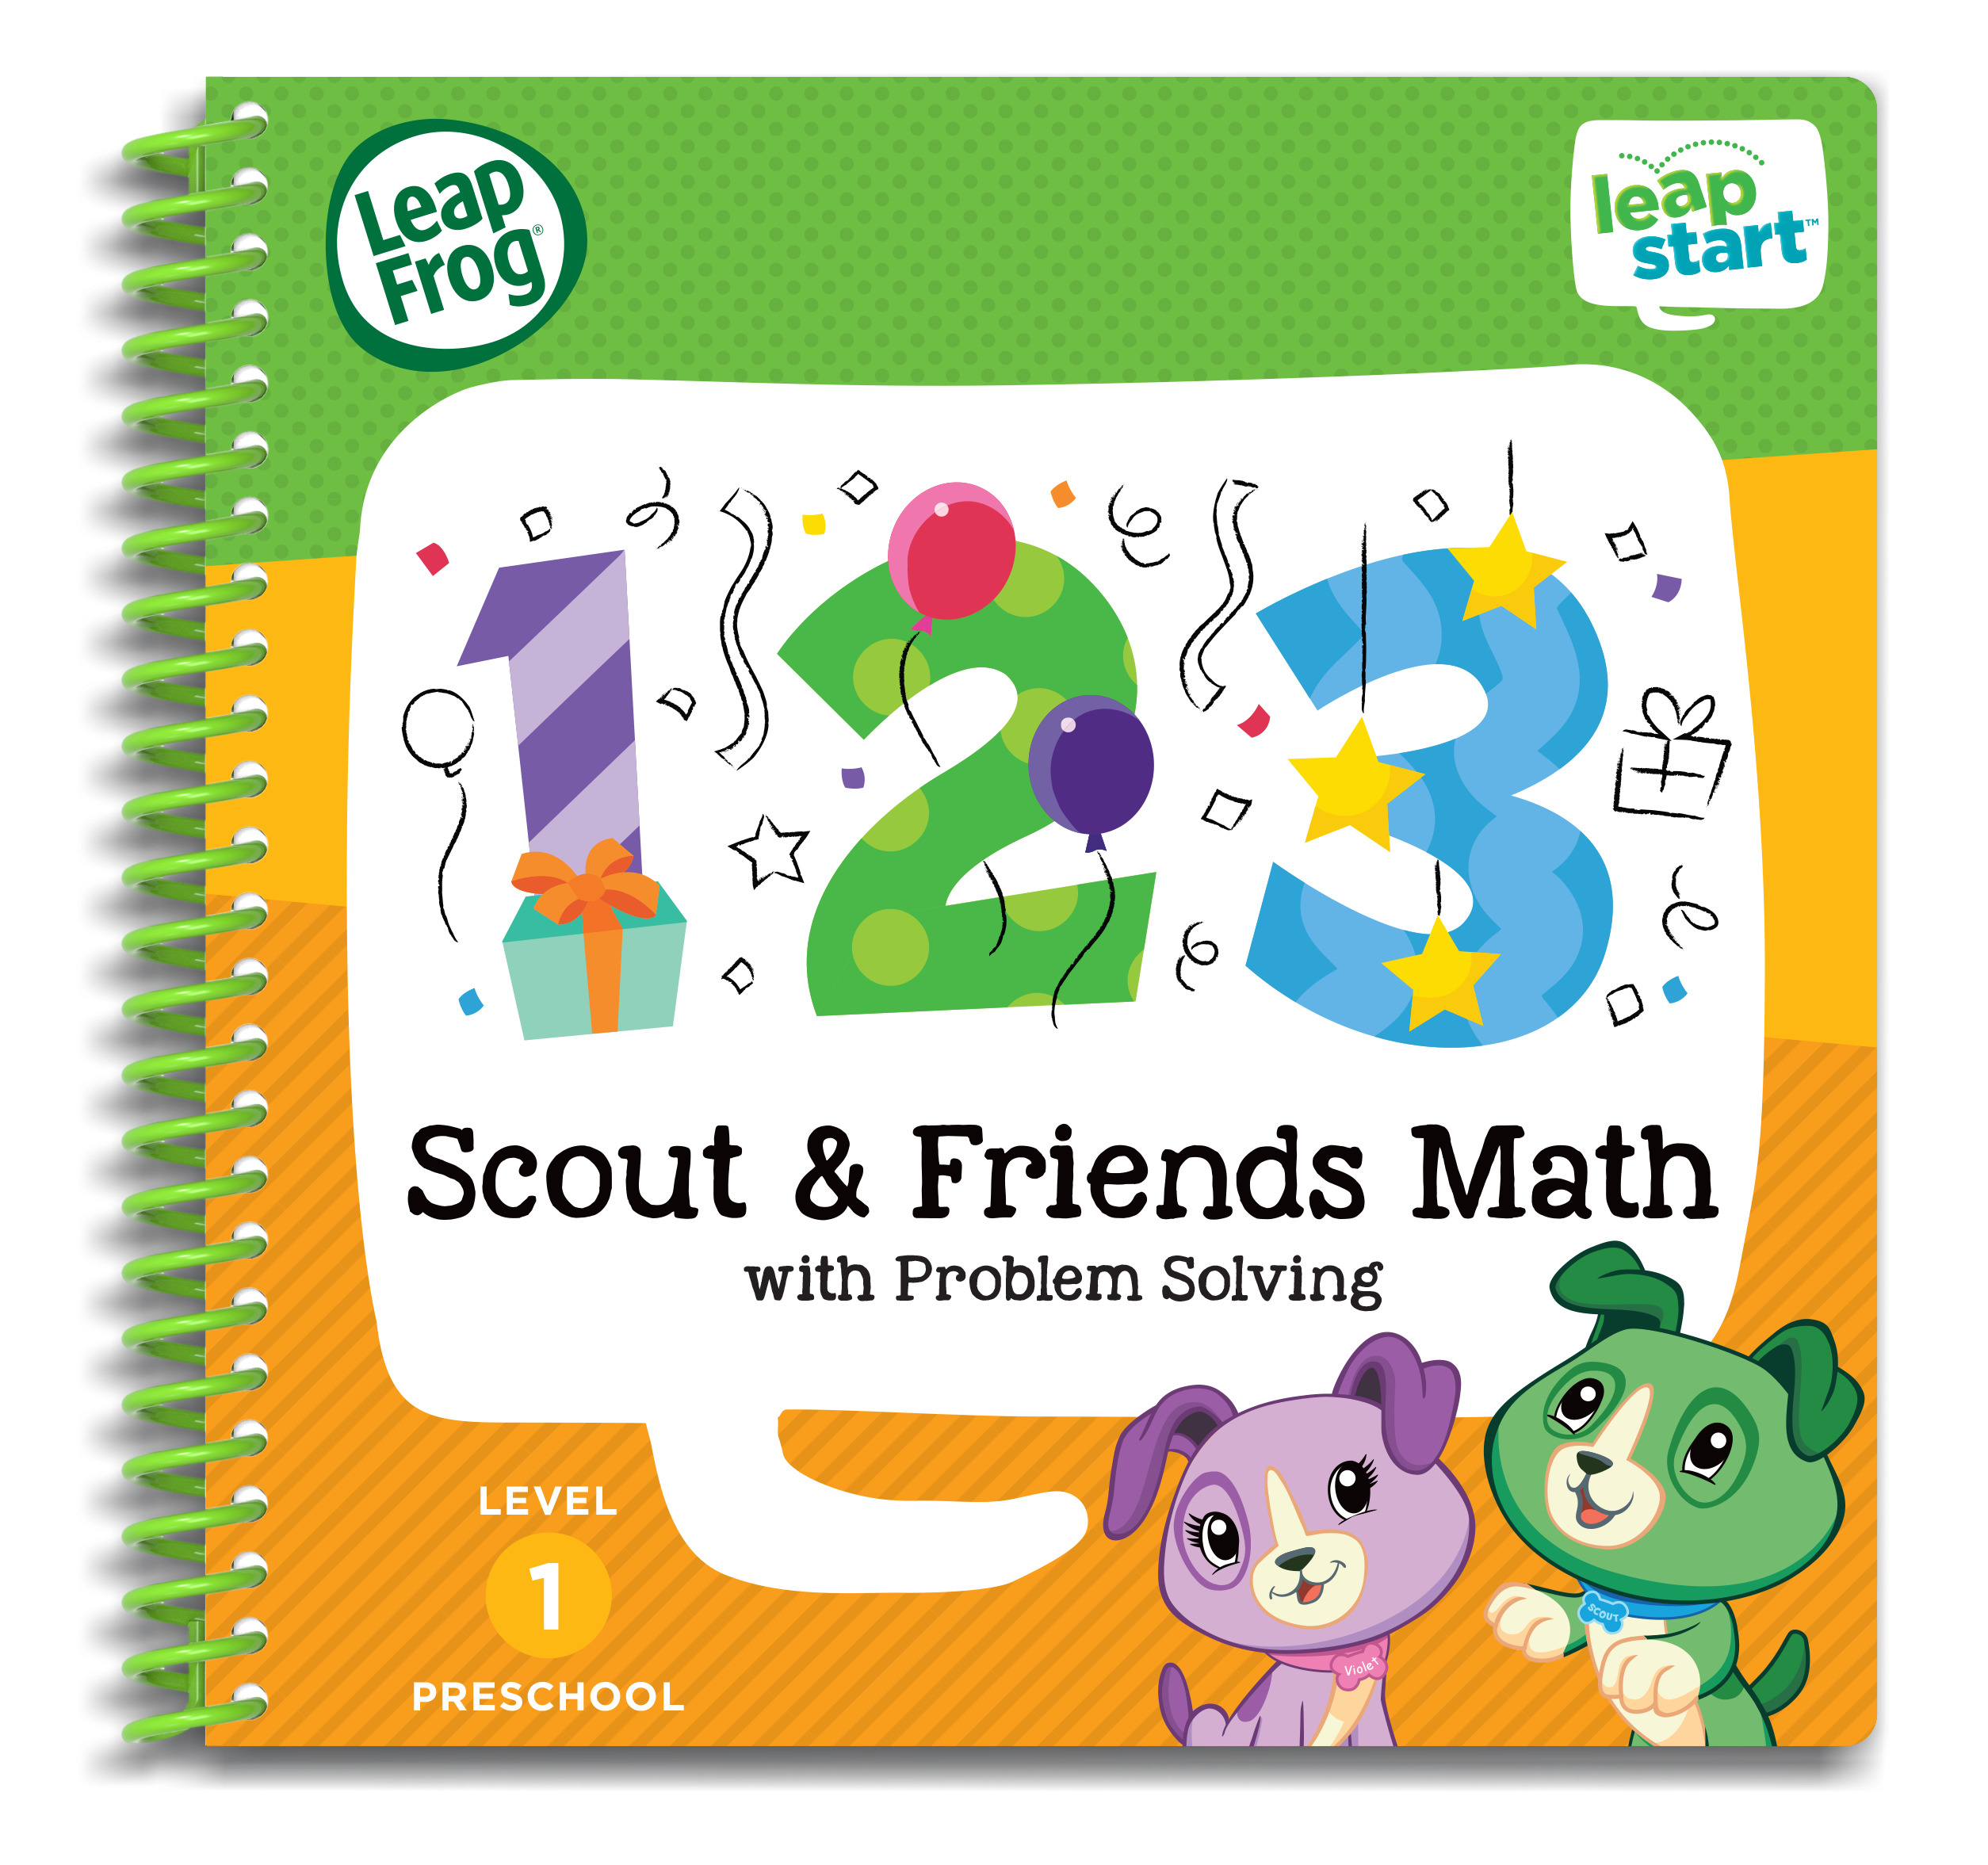 LeapFrog LeapStart Preschool Math Activity Book by LeapFrog®